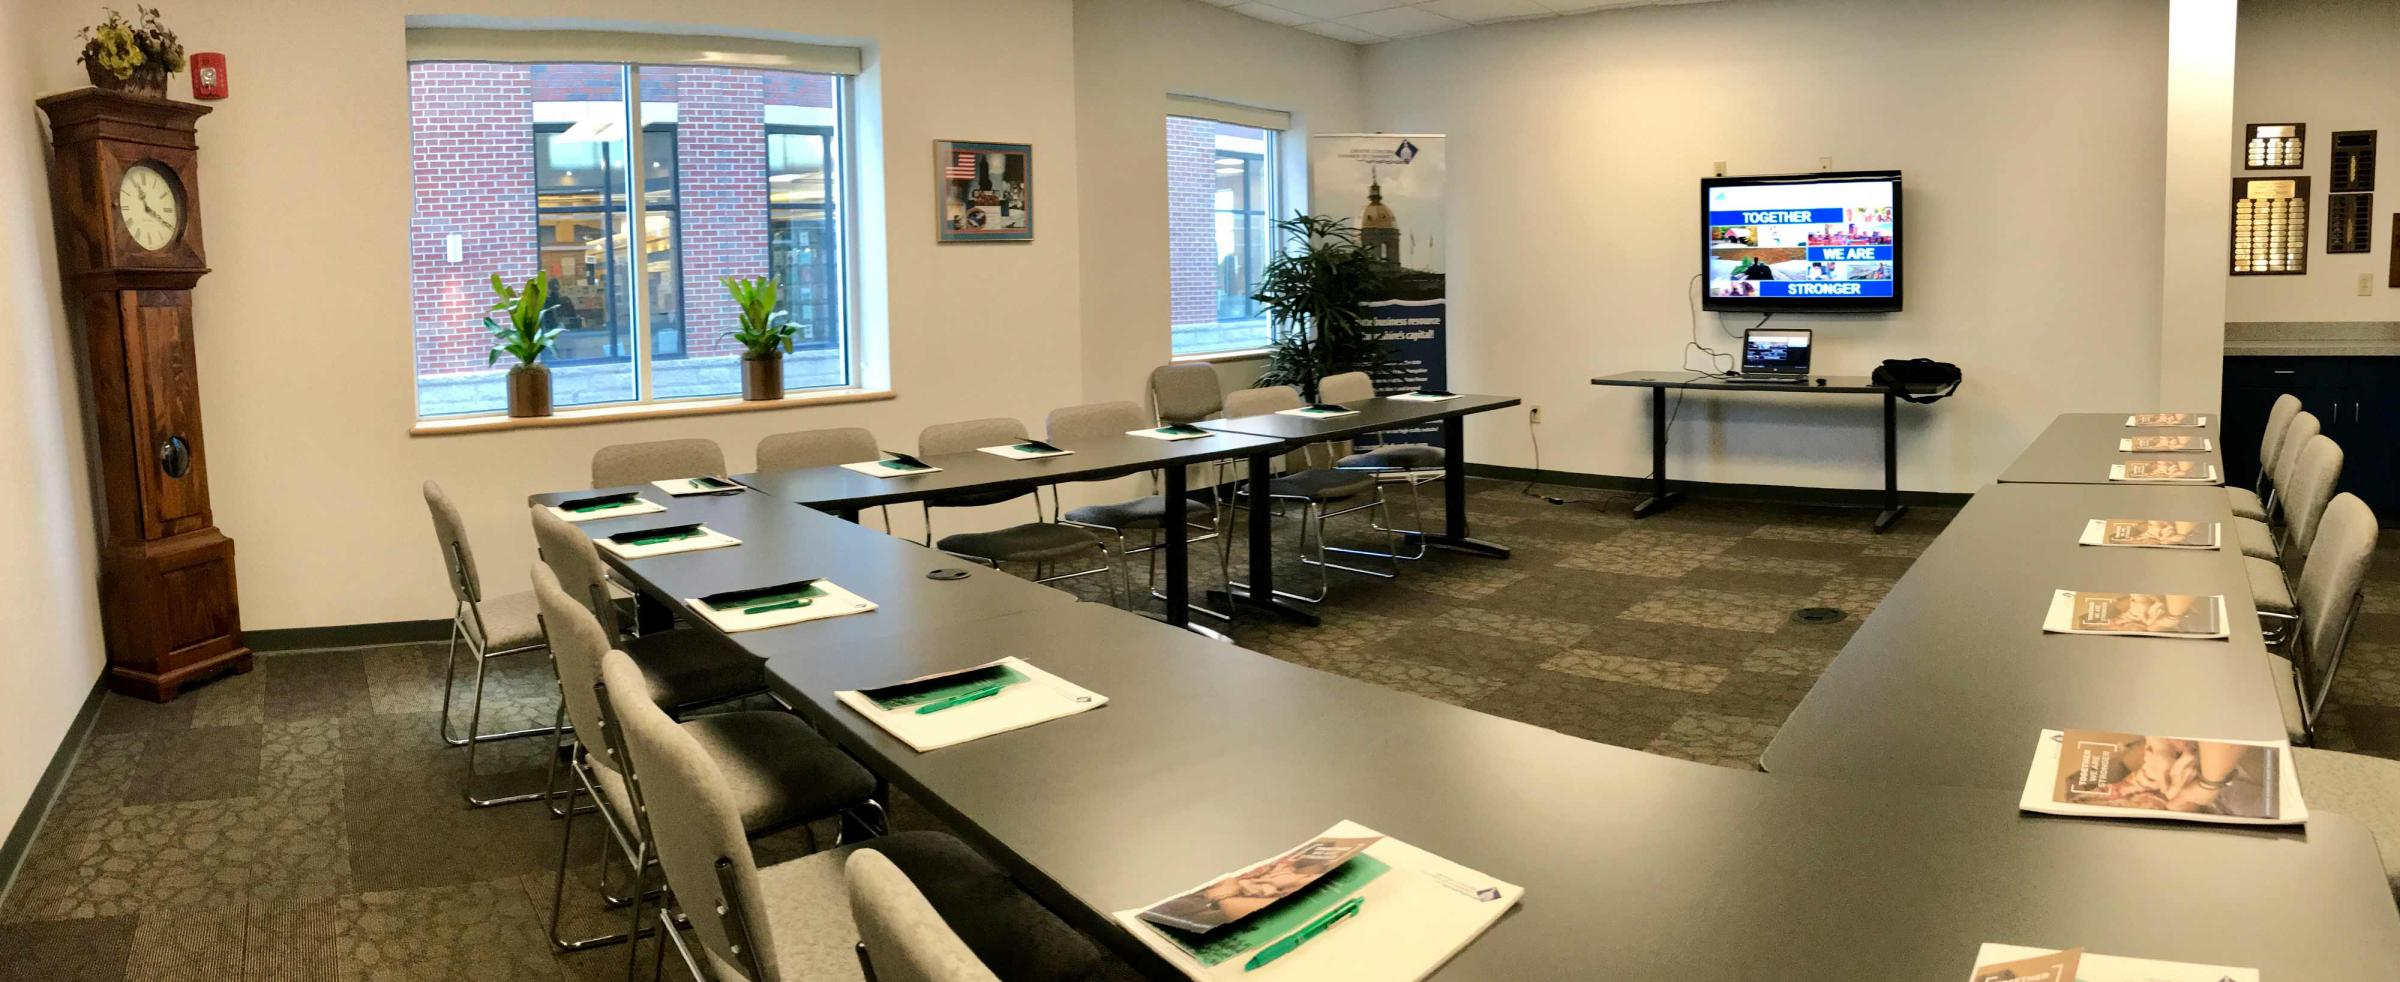 Membership at the Greater Concord Chamber of Commerce includes complimentary professional development training opportunities on a range of topics.jpg